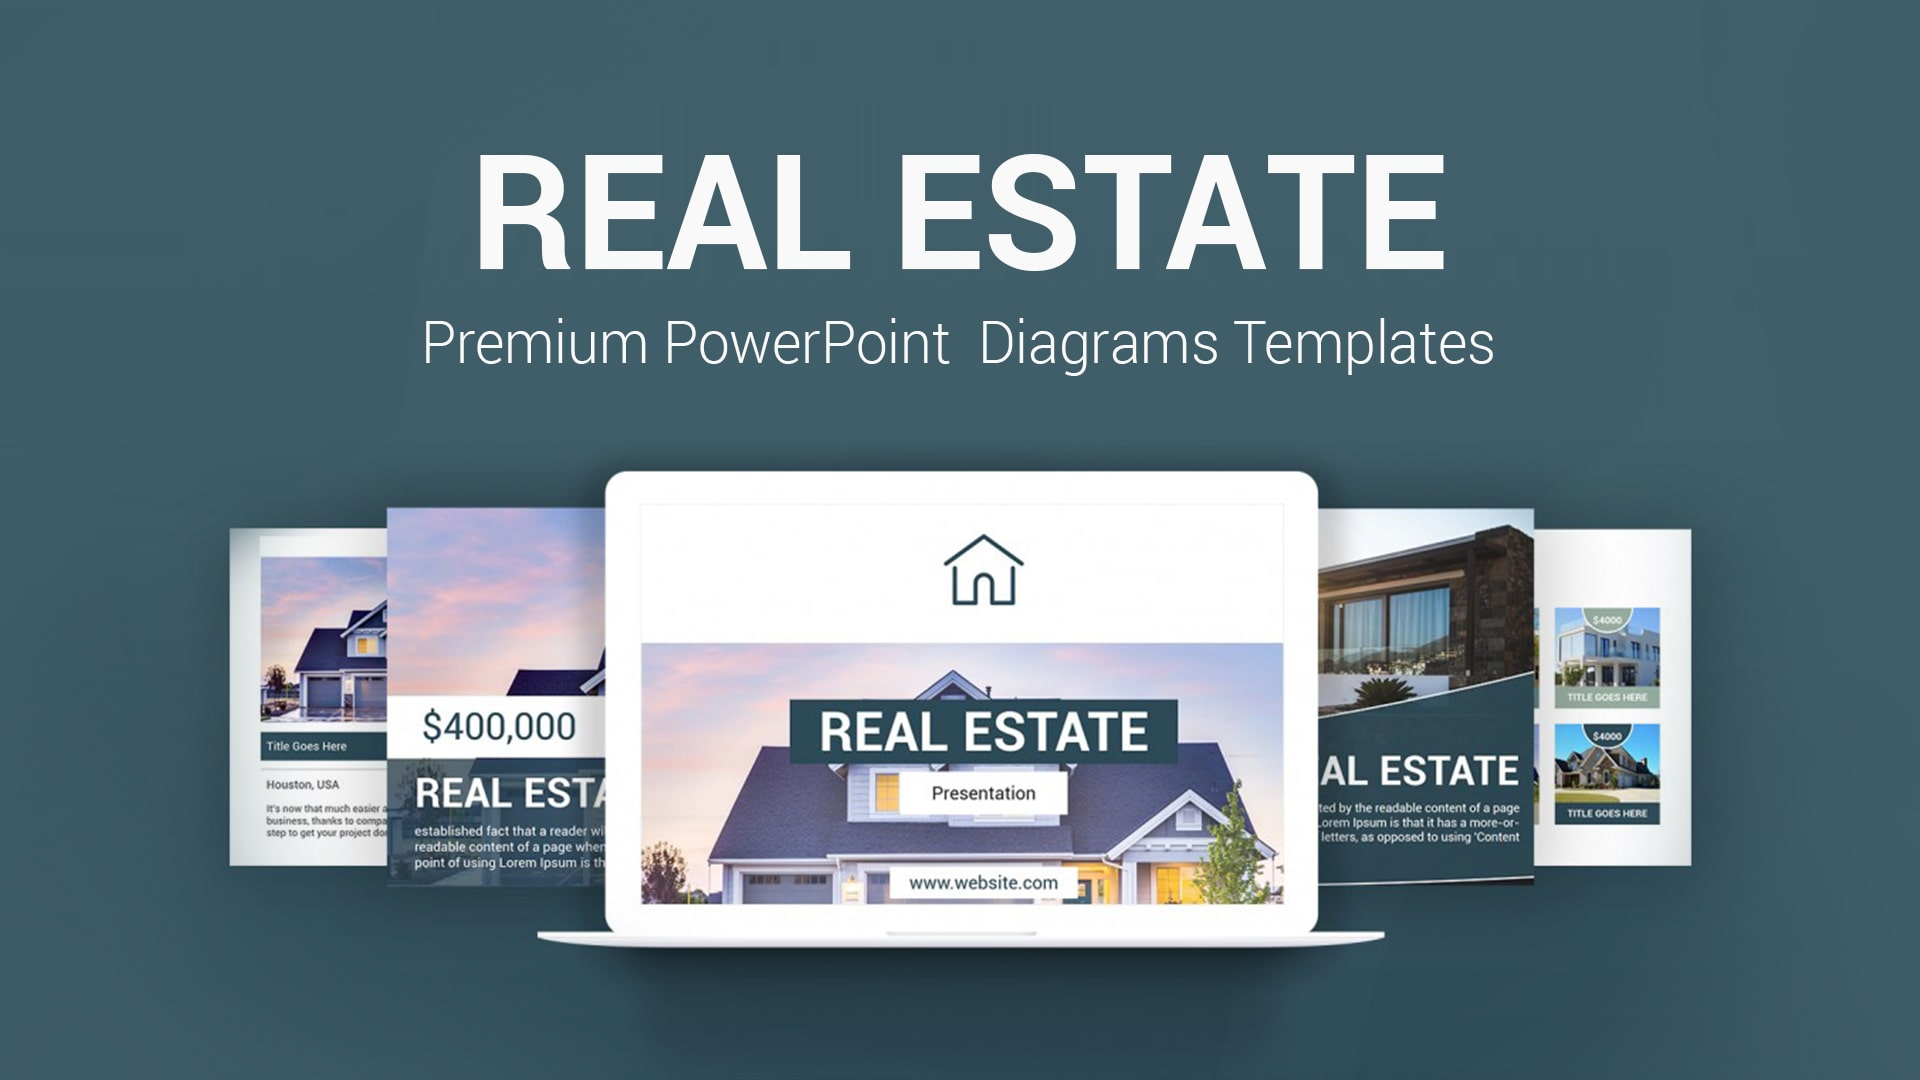 Real Estate PowerPoint Template – Real Estate Business Templates for Brokers, Agents, and Agencies